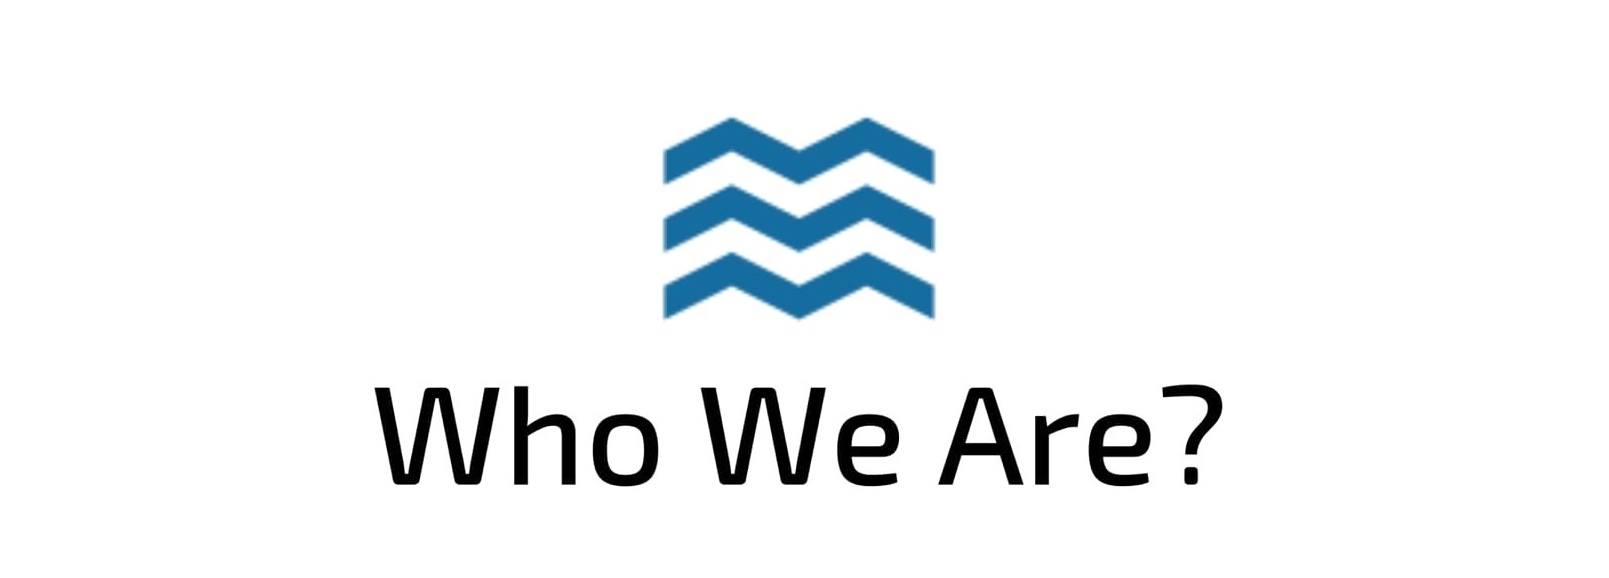 <p>Who we are?</p>